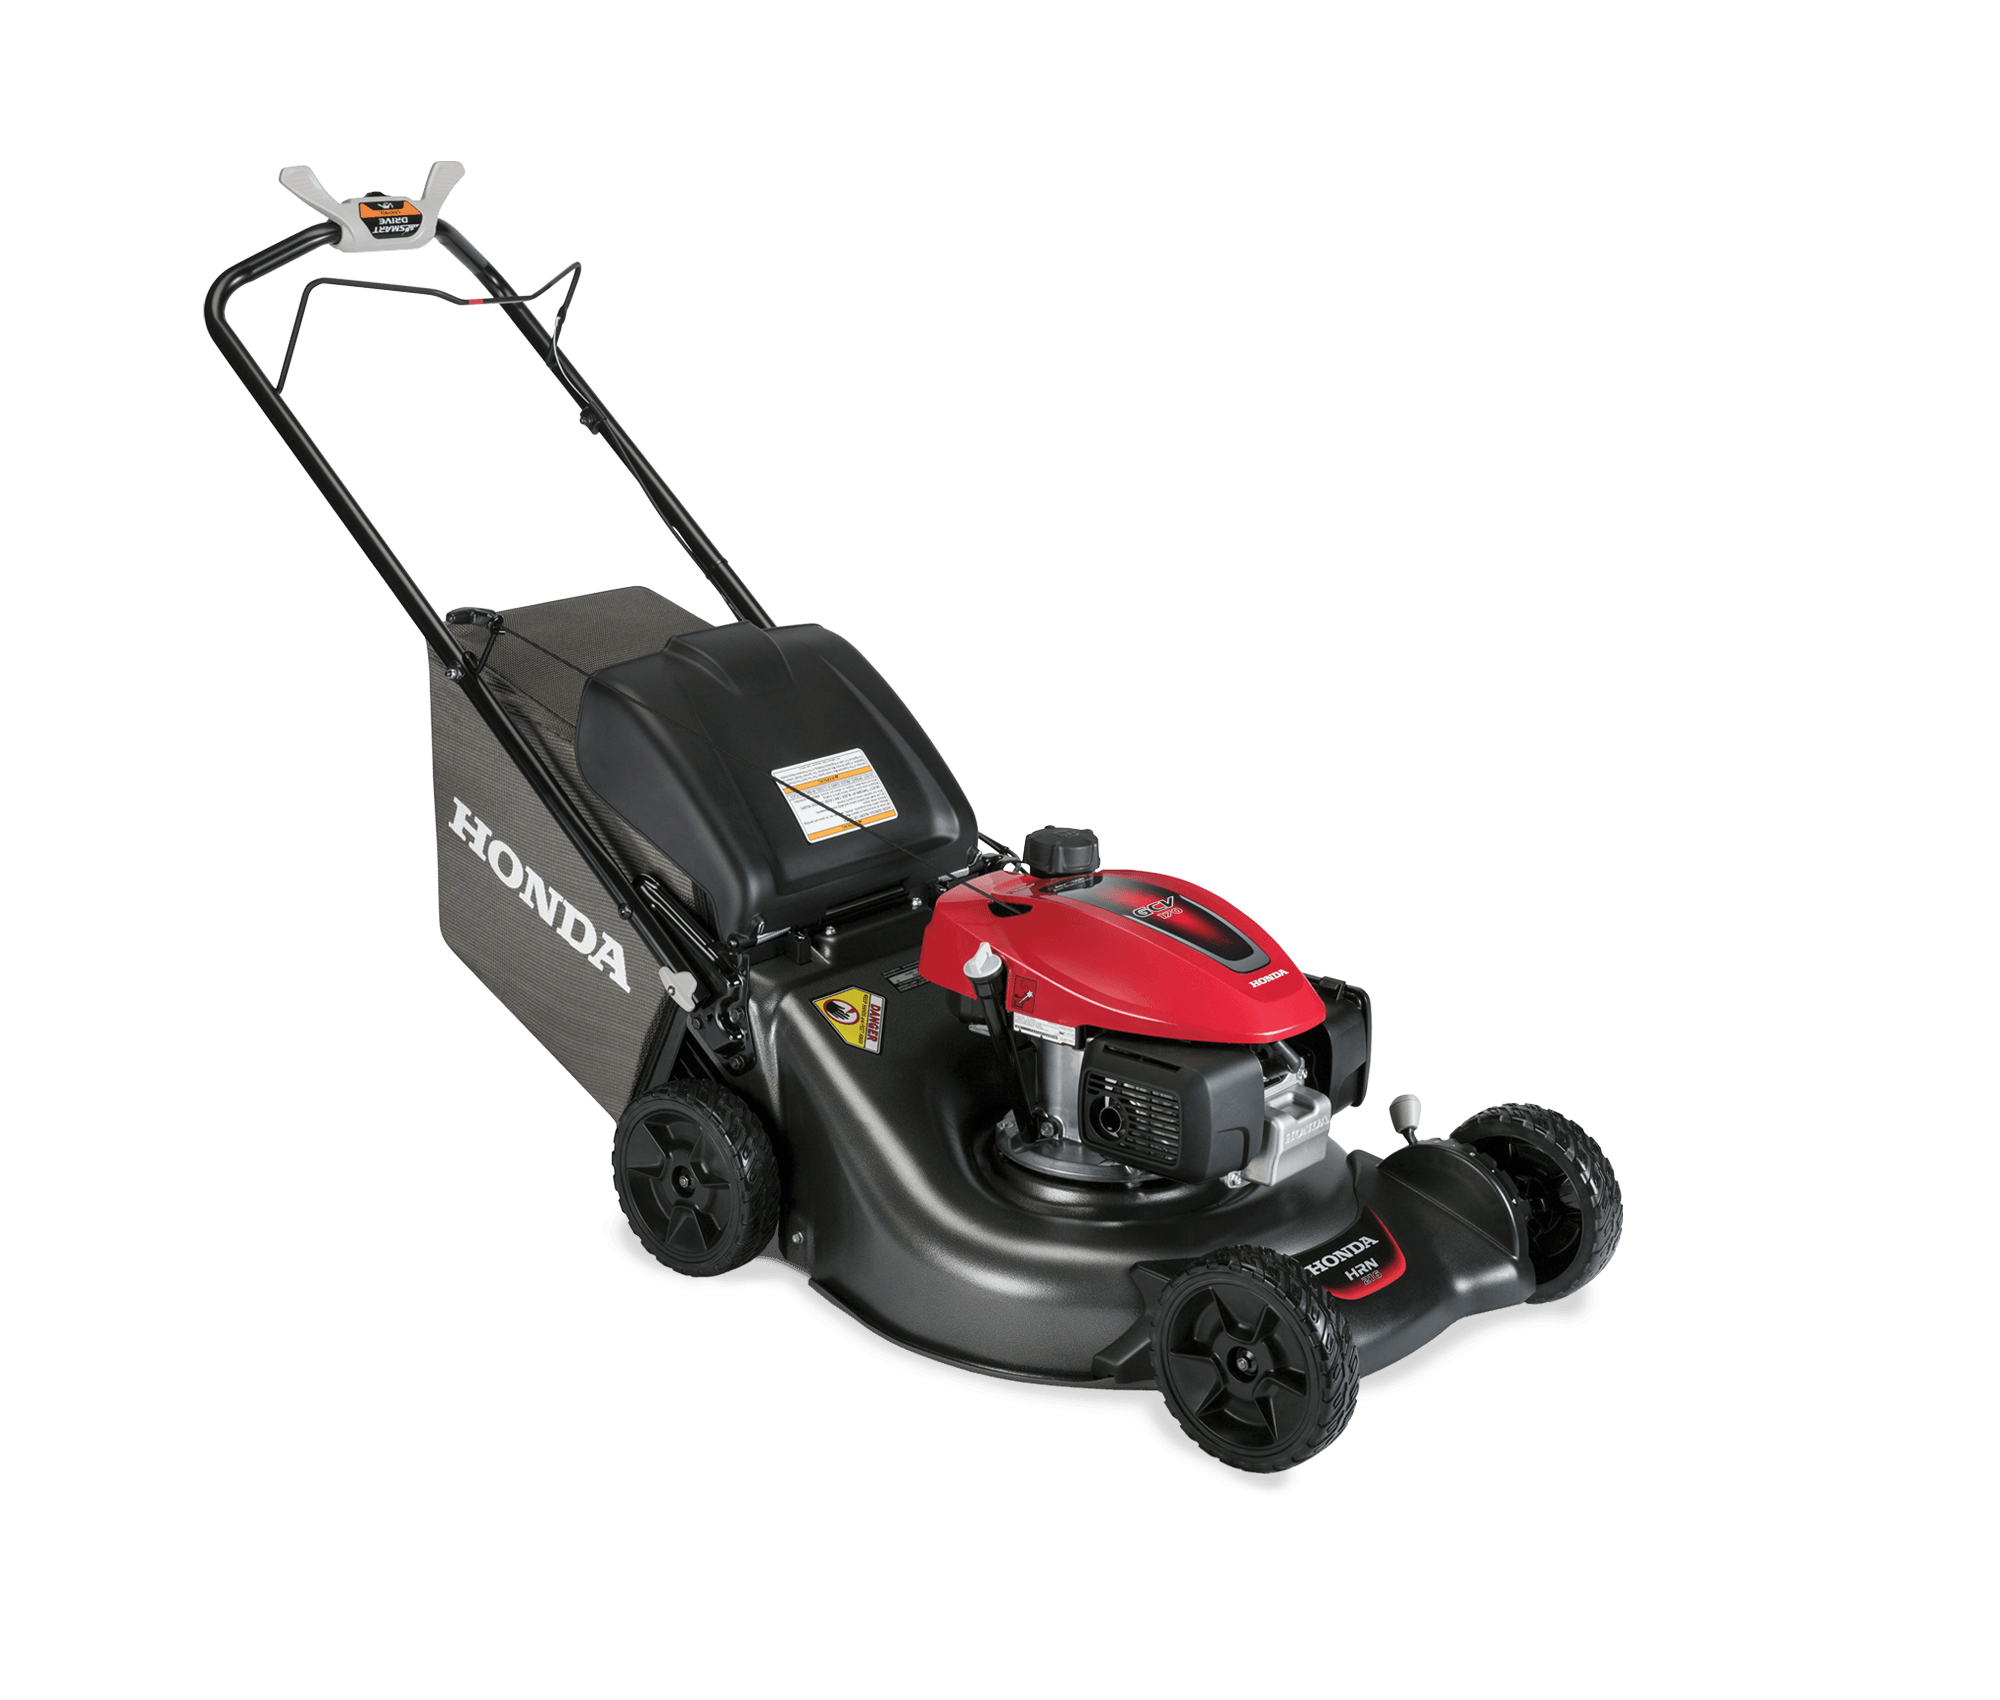 Image of the HRN Smart-Drive<sup>TM</sup> Lawn Mower